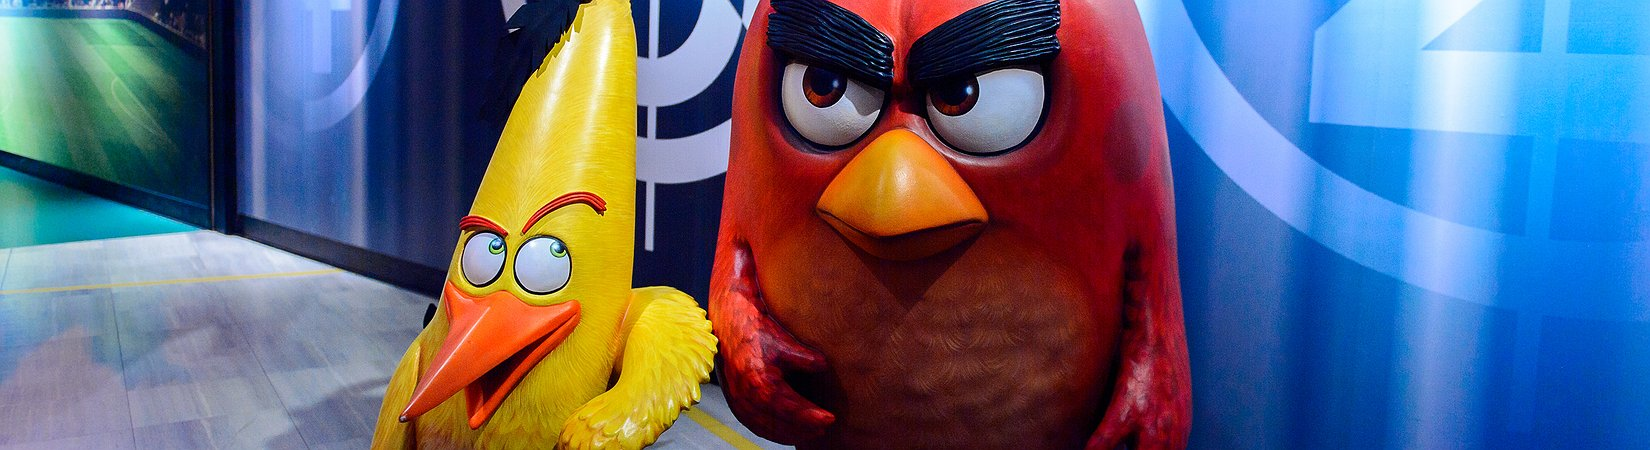 Angry Birds to go public next month